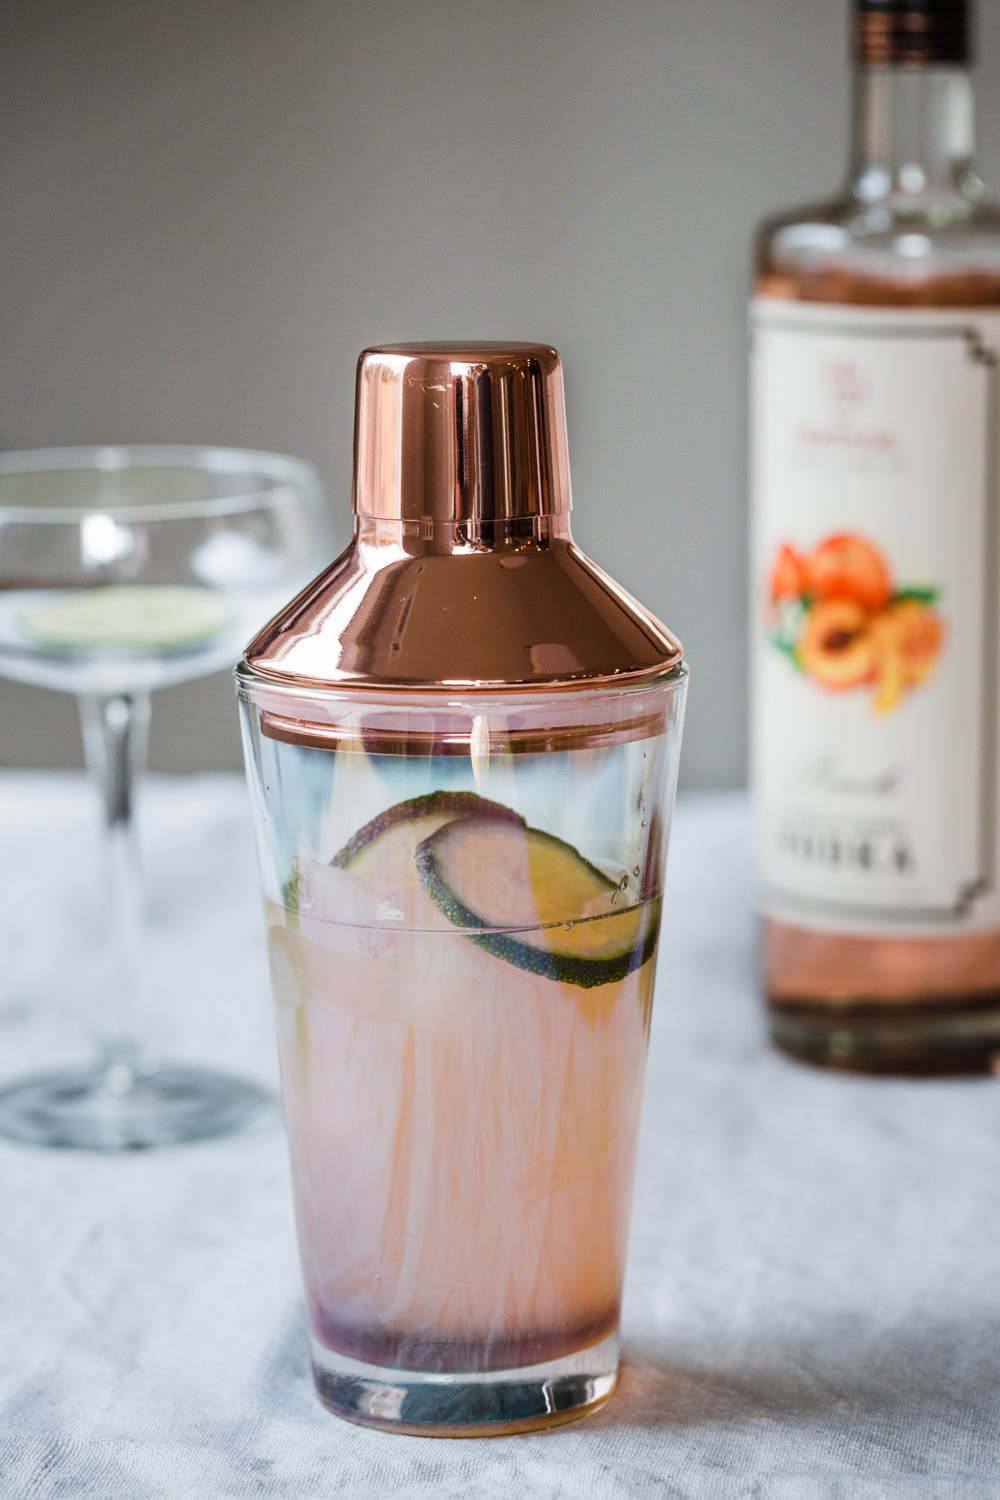 Heritage Distilling Lime and Peach Vodka Fizz-1.jpg